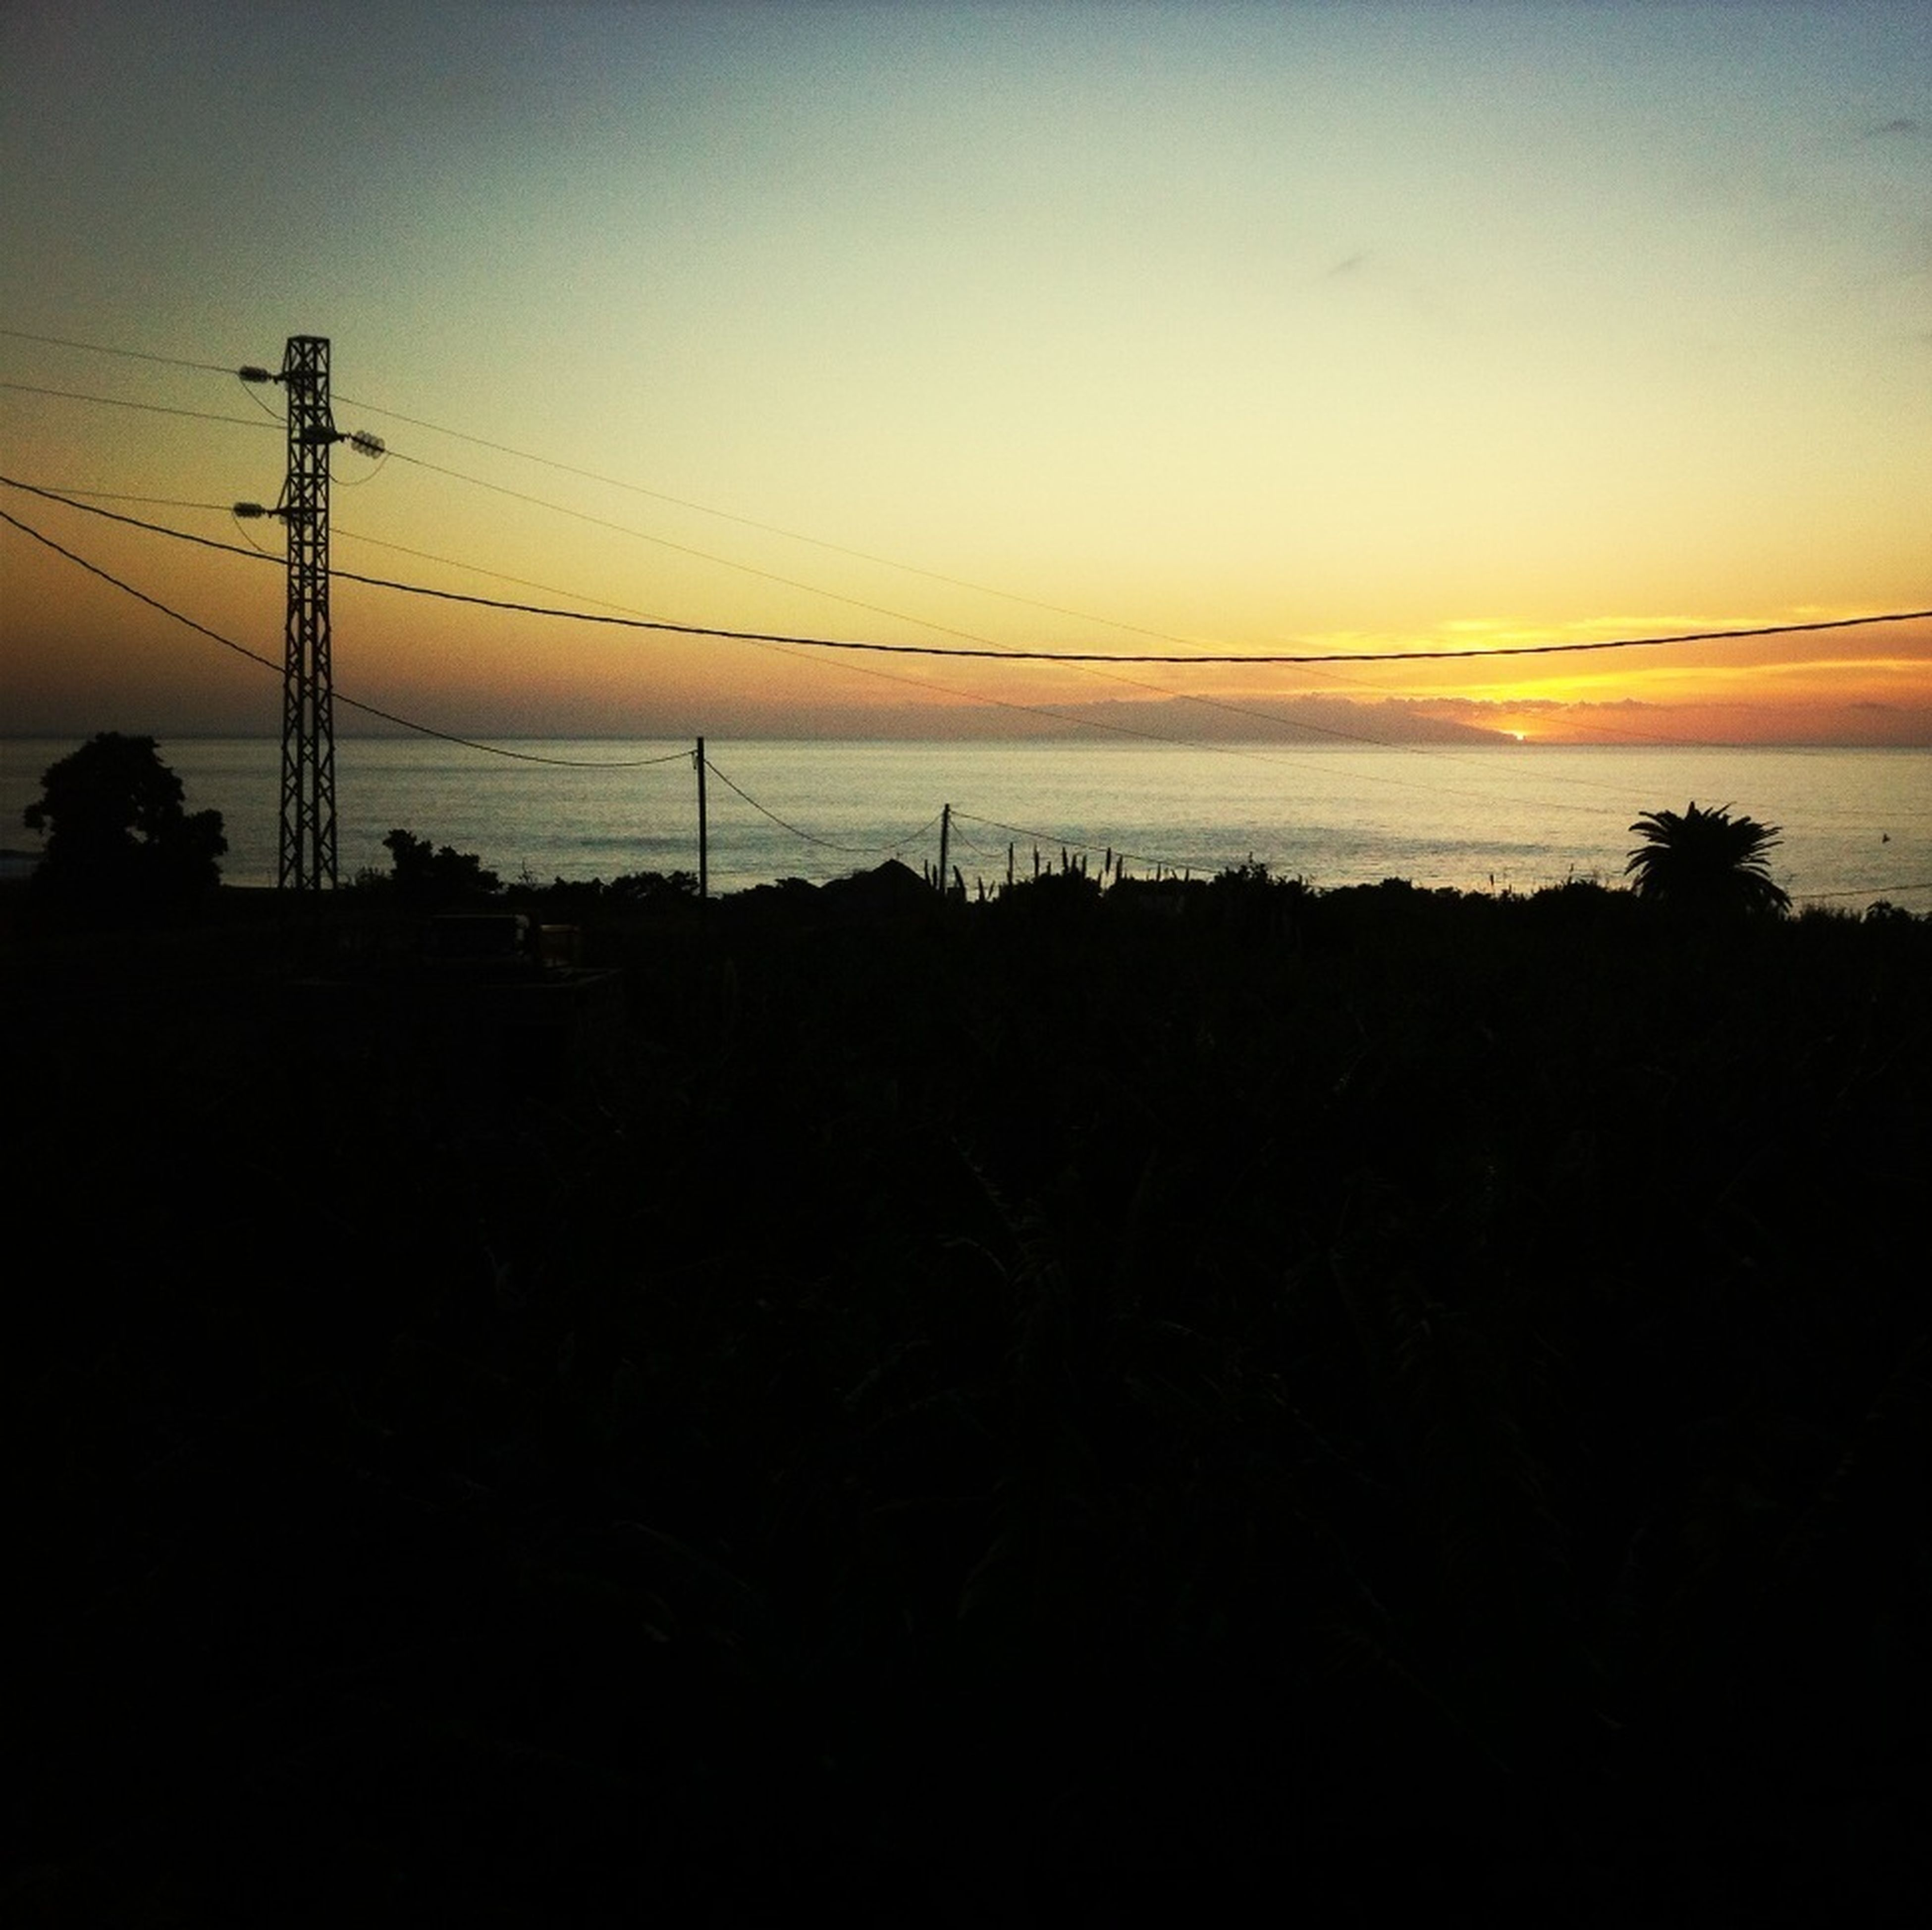 sunset, silhouette, power line, electricity pylon, sky, electricity, power supply, connection, orange color, cable, tranquil scene, water, scenics, tranquility, beauty in nature, nature, dusk, clear sky, outdoors, idyllic